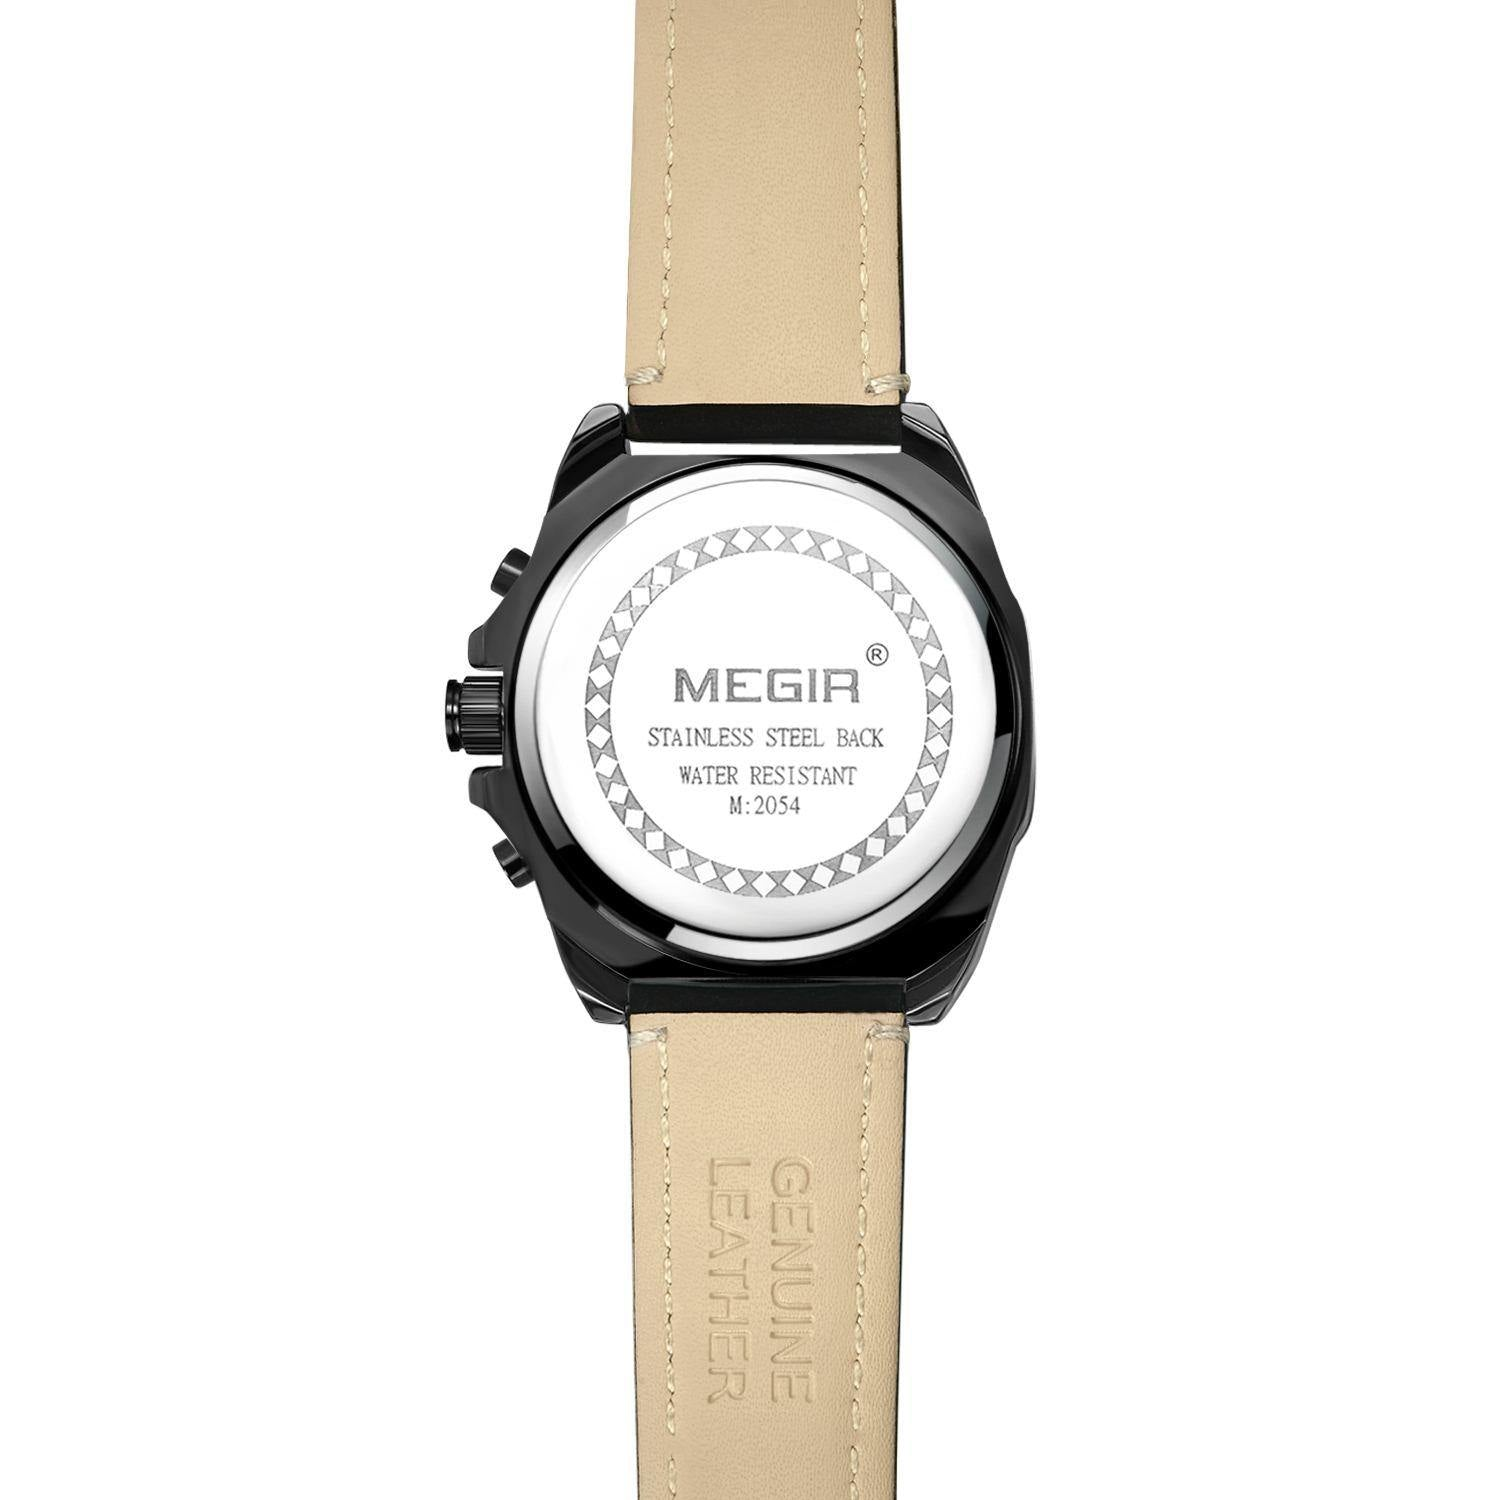 Men's Sports Watch, Military Quartz Watch 2054 - MEGIR